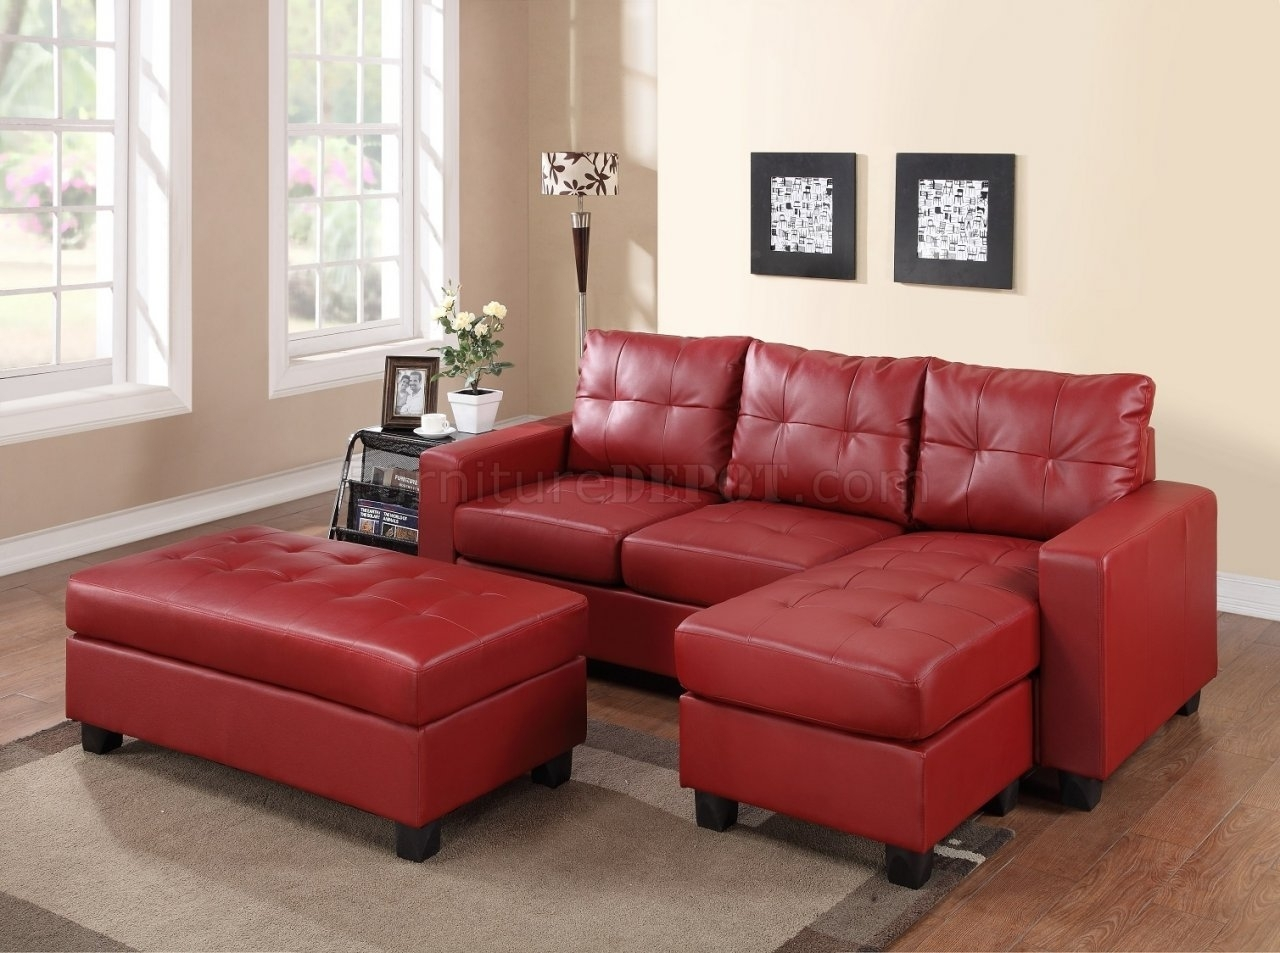 2511 Sectional Sofa Set In Red Bonded Leather Match Pu Within Red Sectional Sofas (Photo 6 of 10)